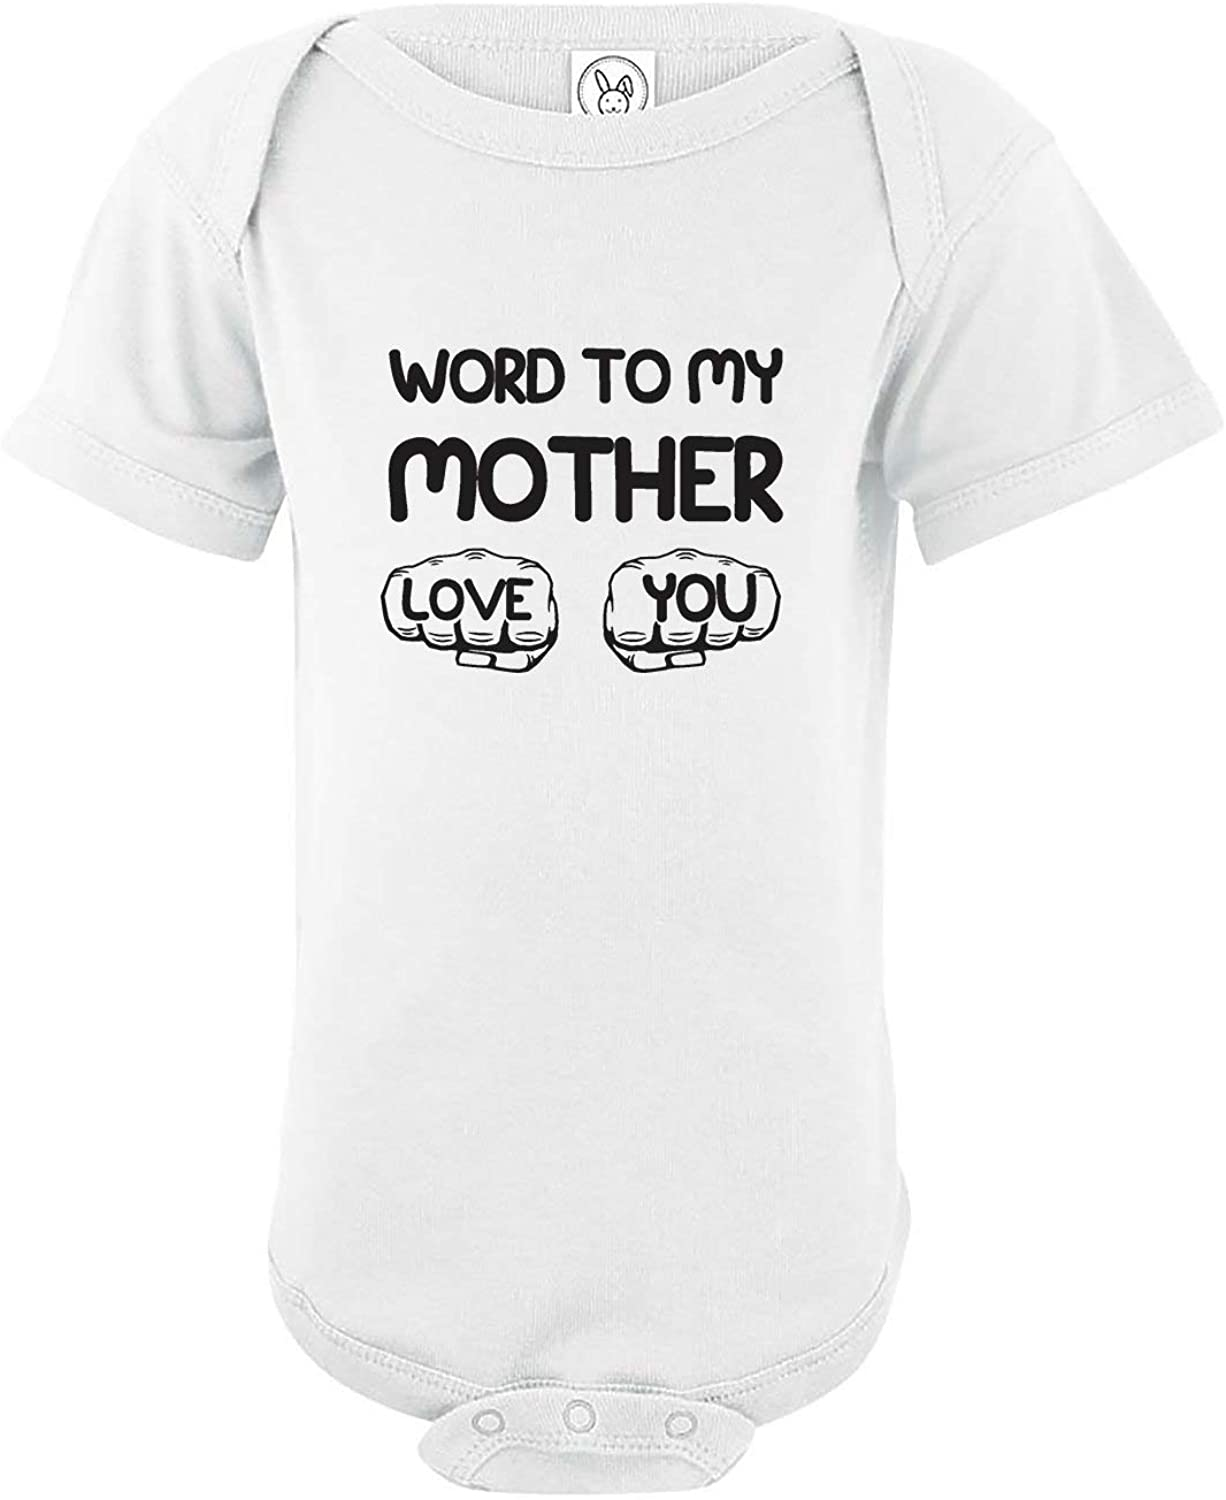 Word to My Mother, Love You - Unisex Baby Cotton Bodysuit - Funny Infant One-Piece Romper Outfit